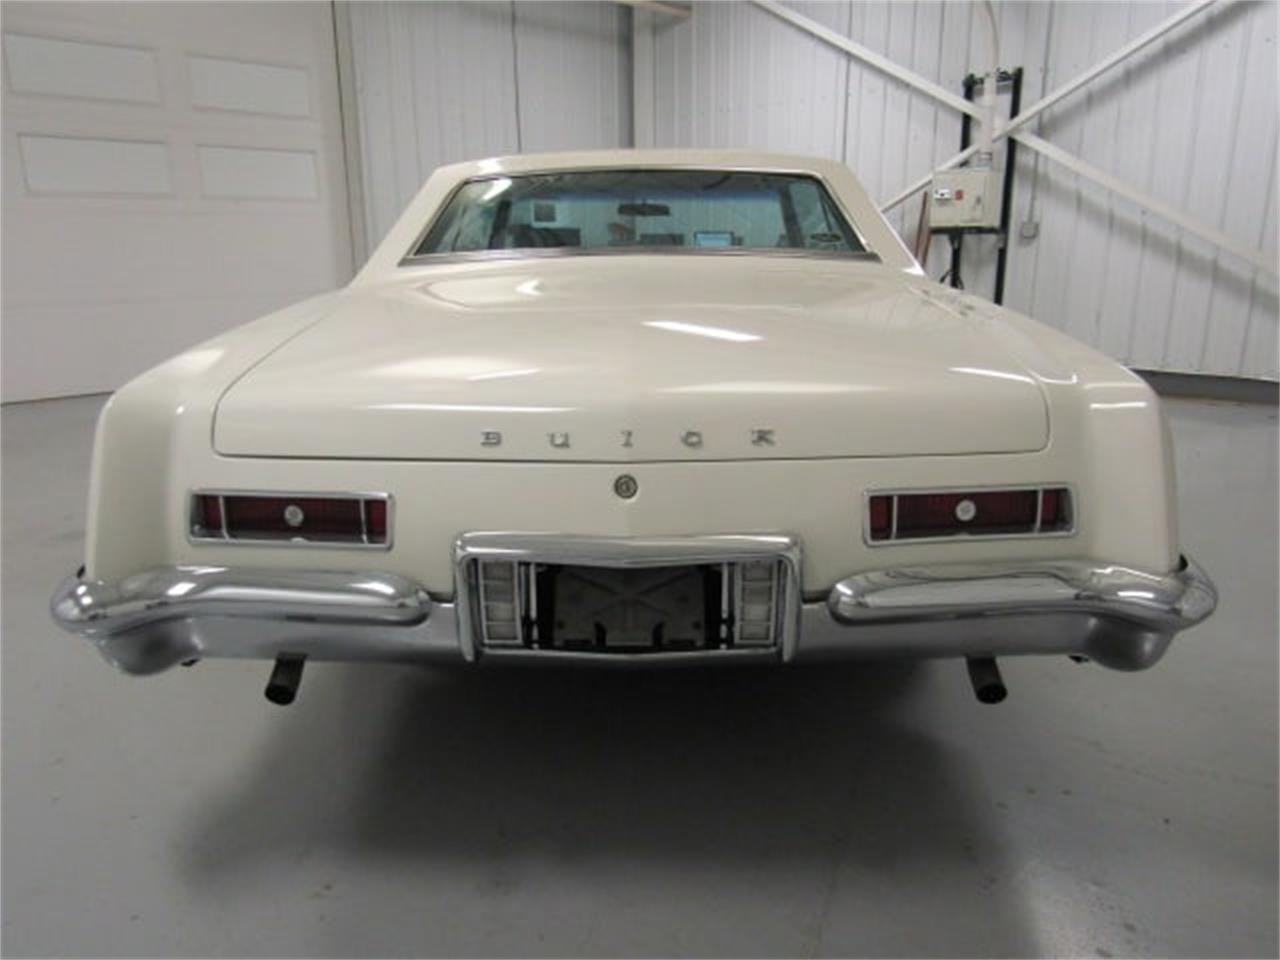 Large Picture of Classic '63 Buick Riviera located in Virginia - $38,910.00 - MJSM